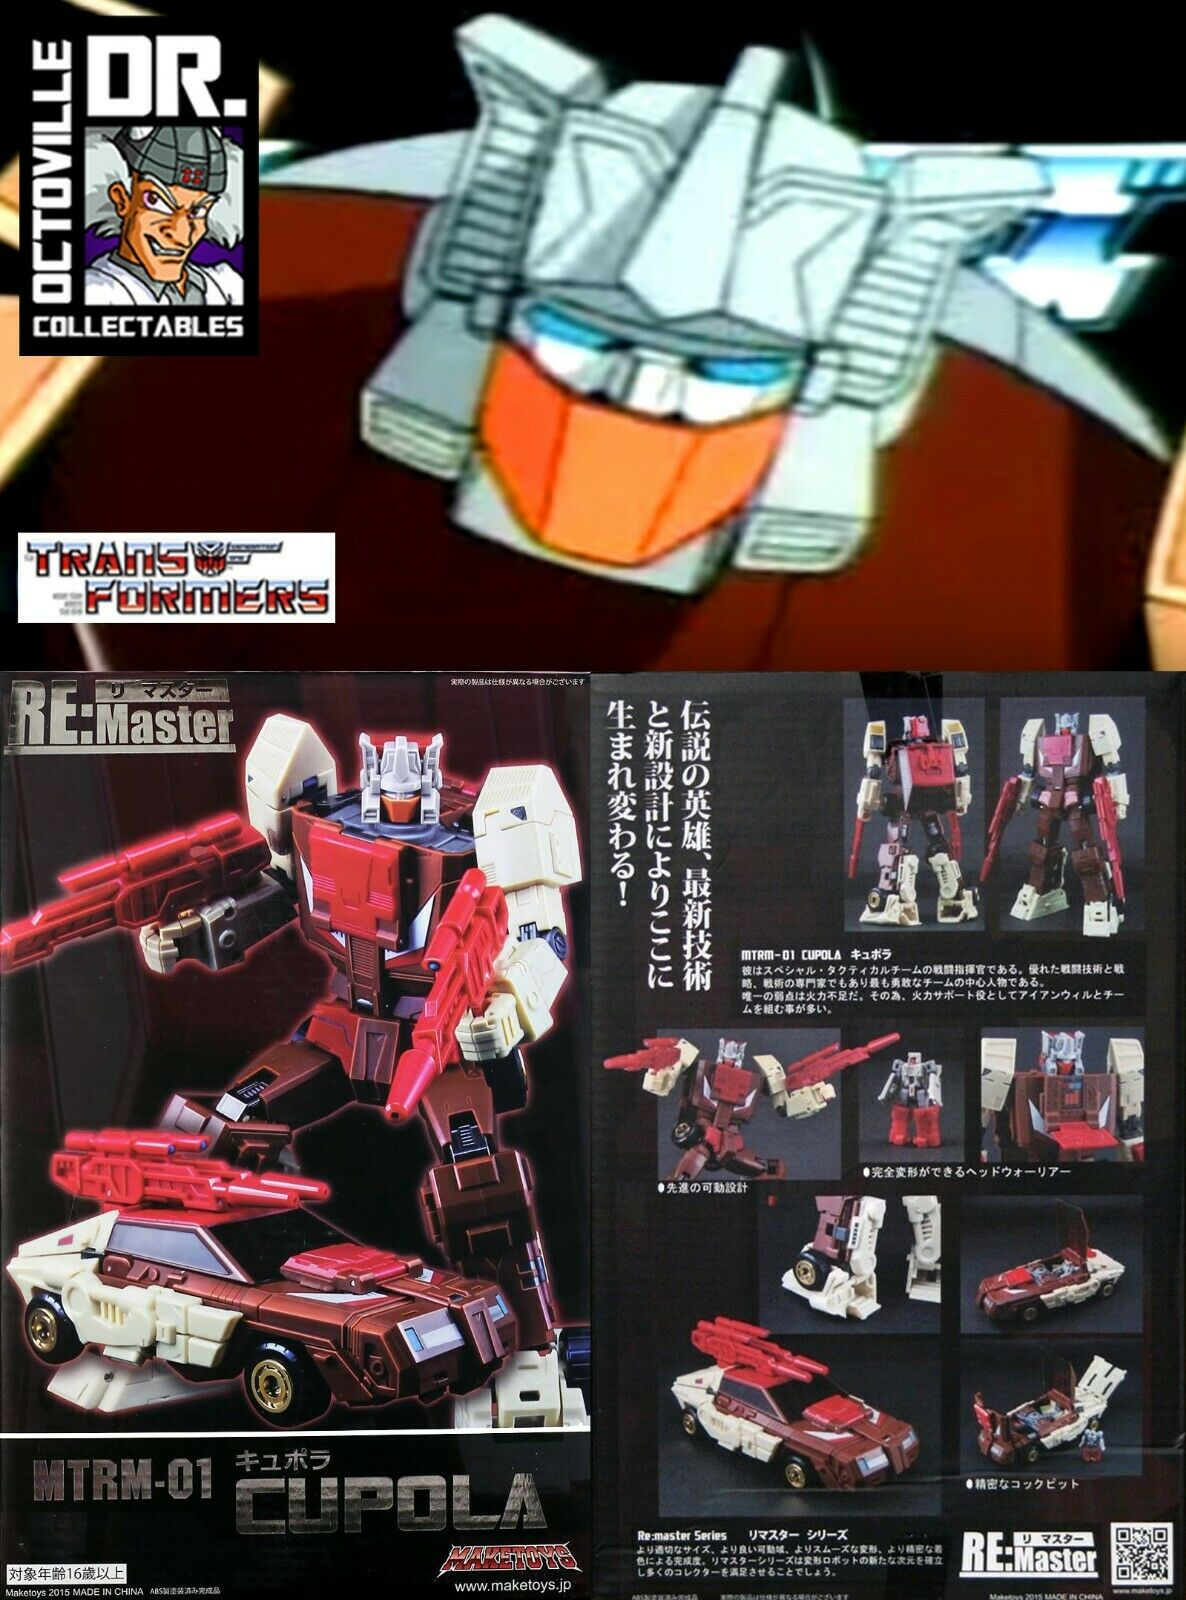 Transformers Masterpiece maketoys mtrm - 01 coupole MP chromedome BRAND NEW